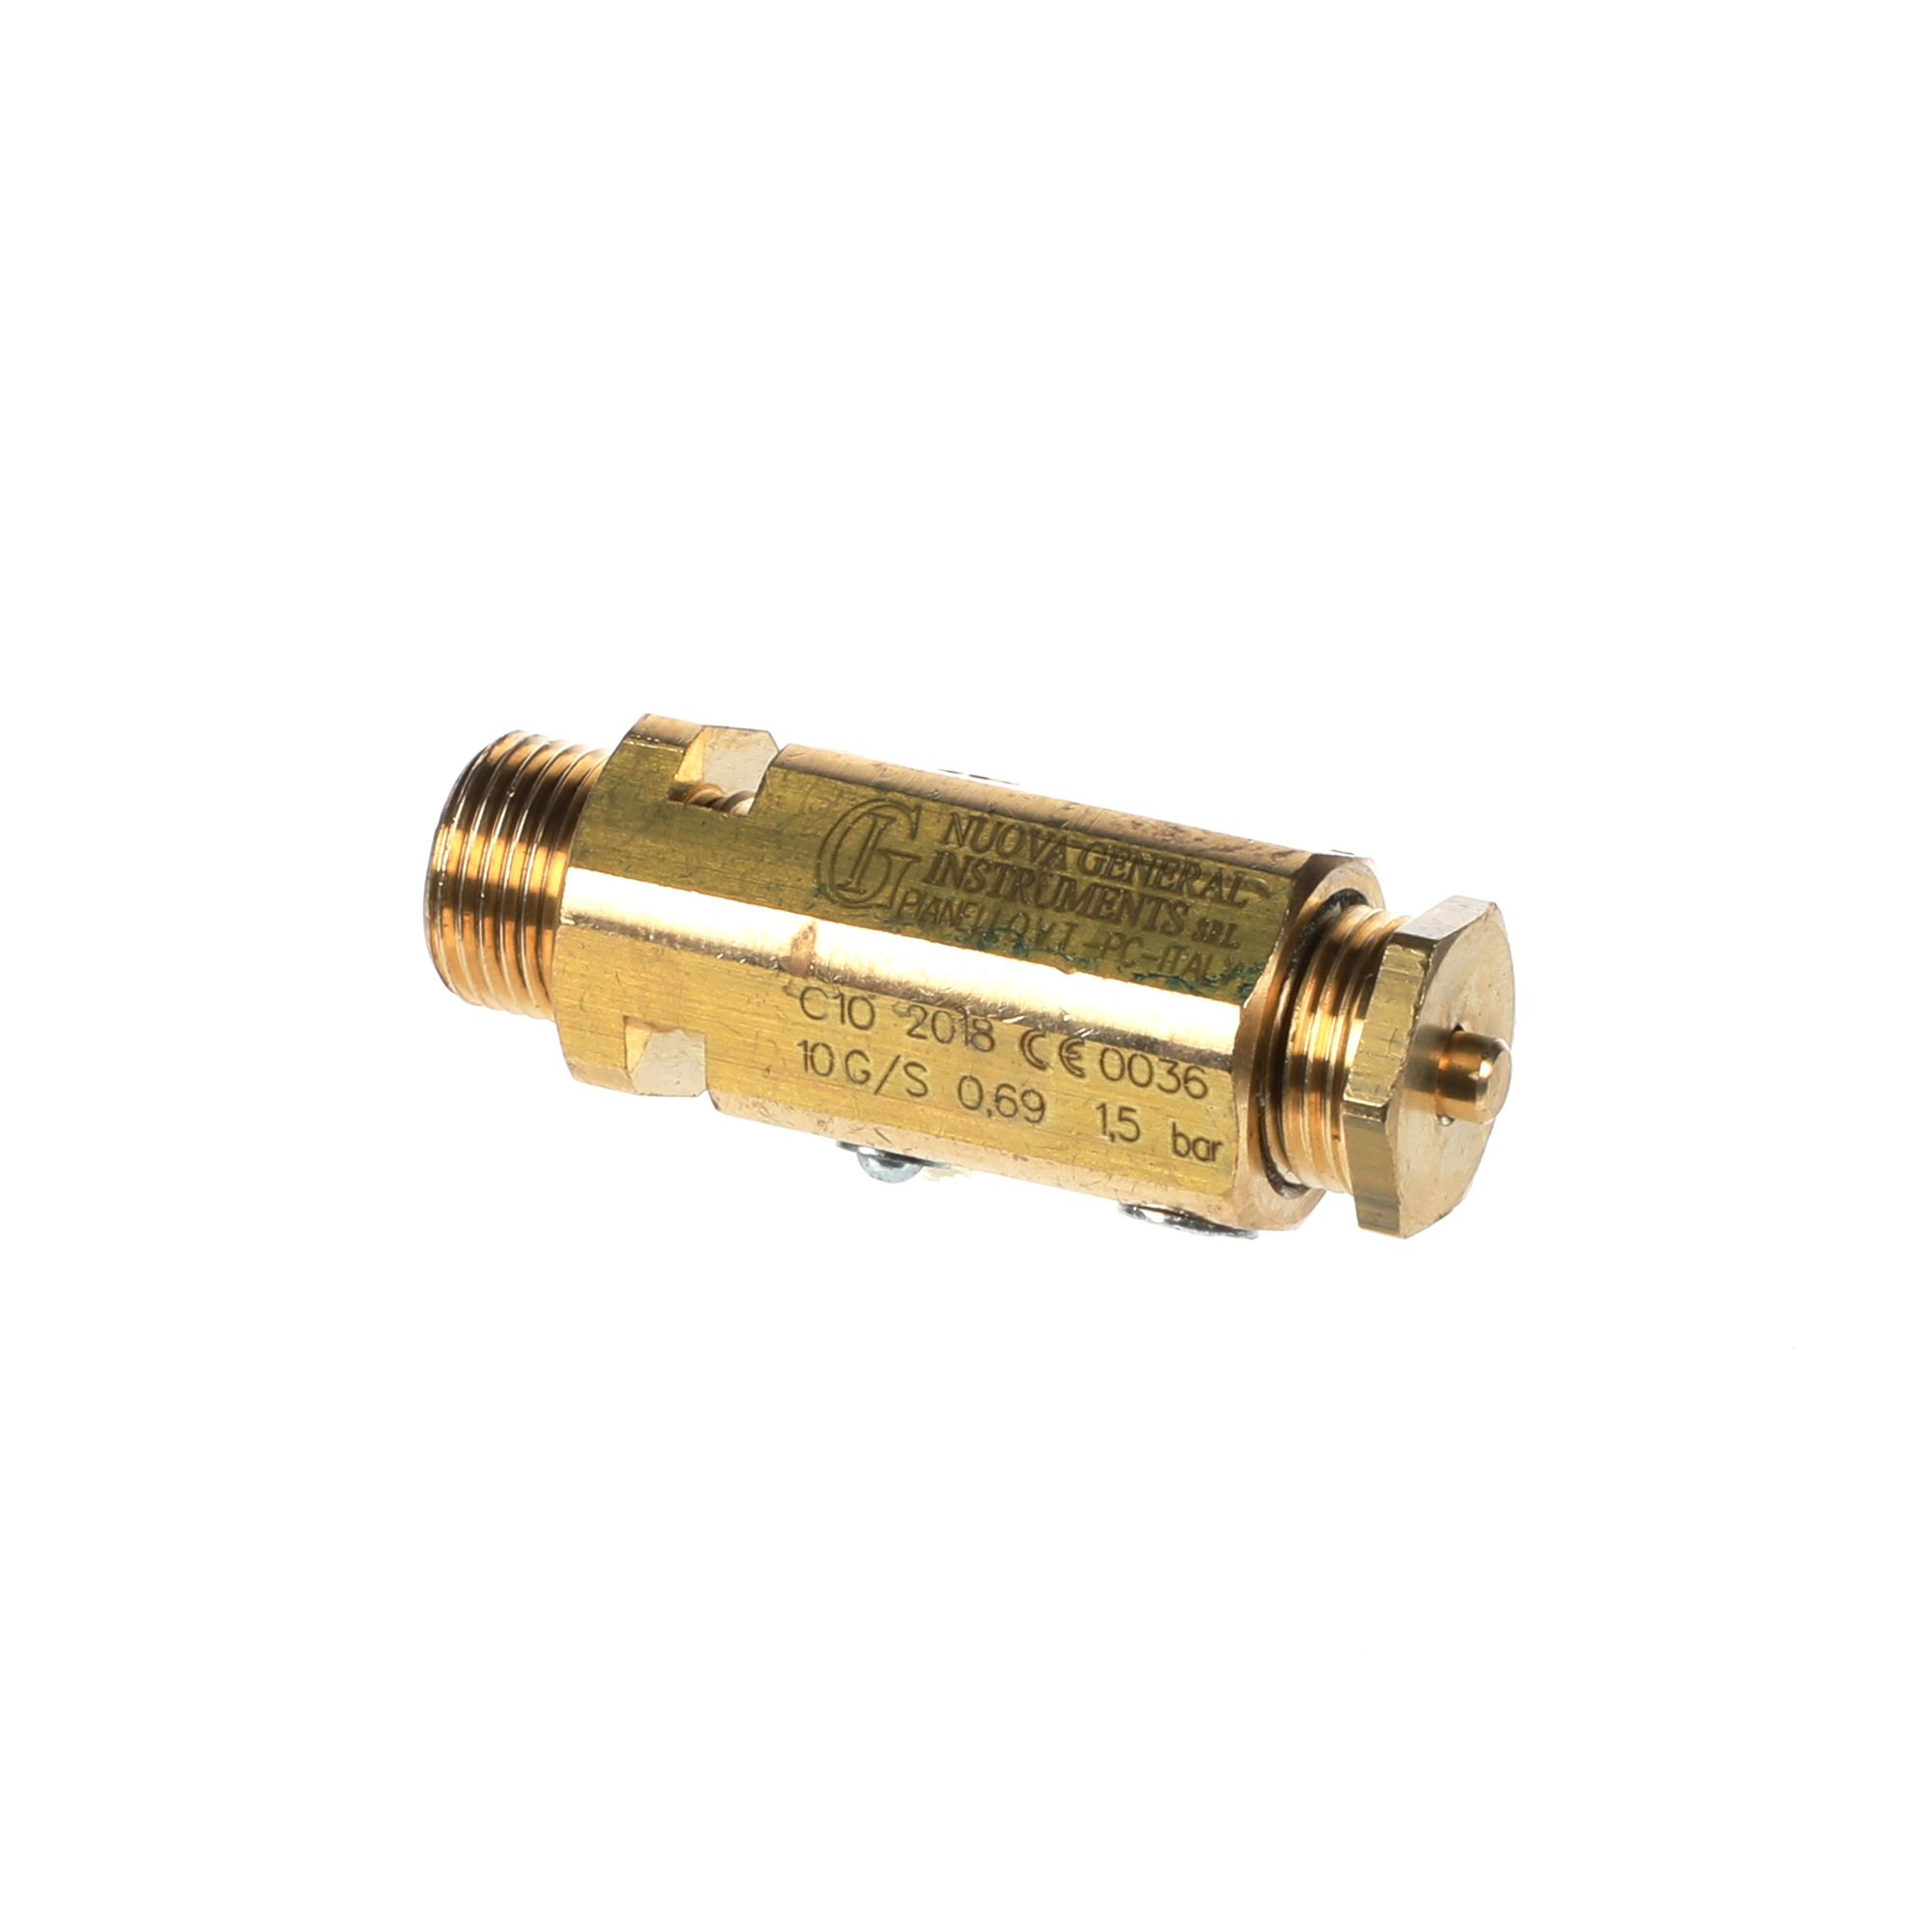 NGI 1.5bar Safety Valve